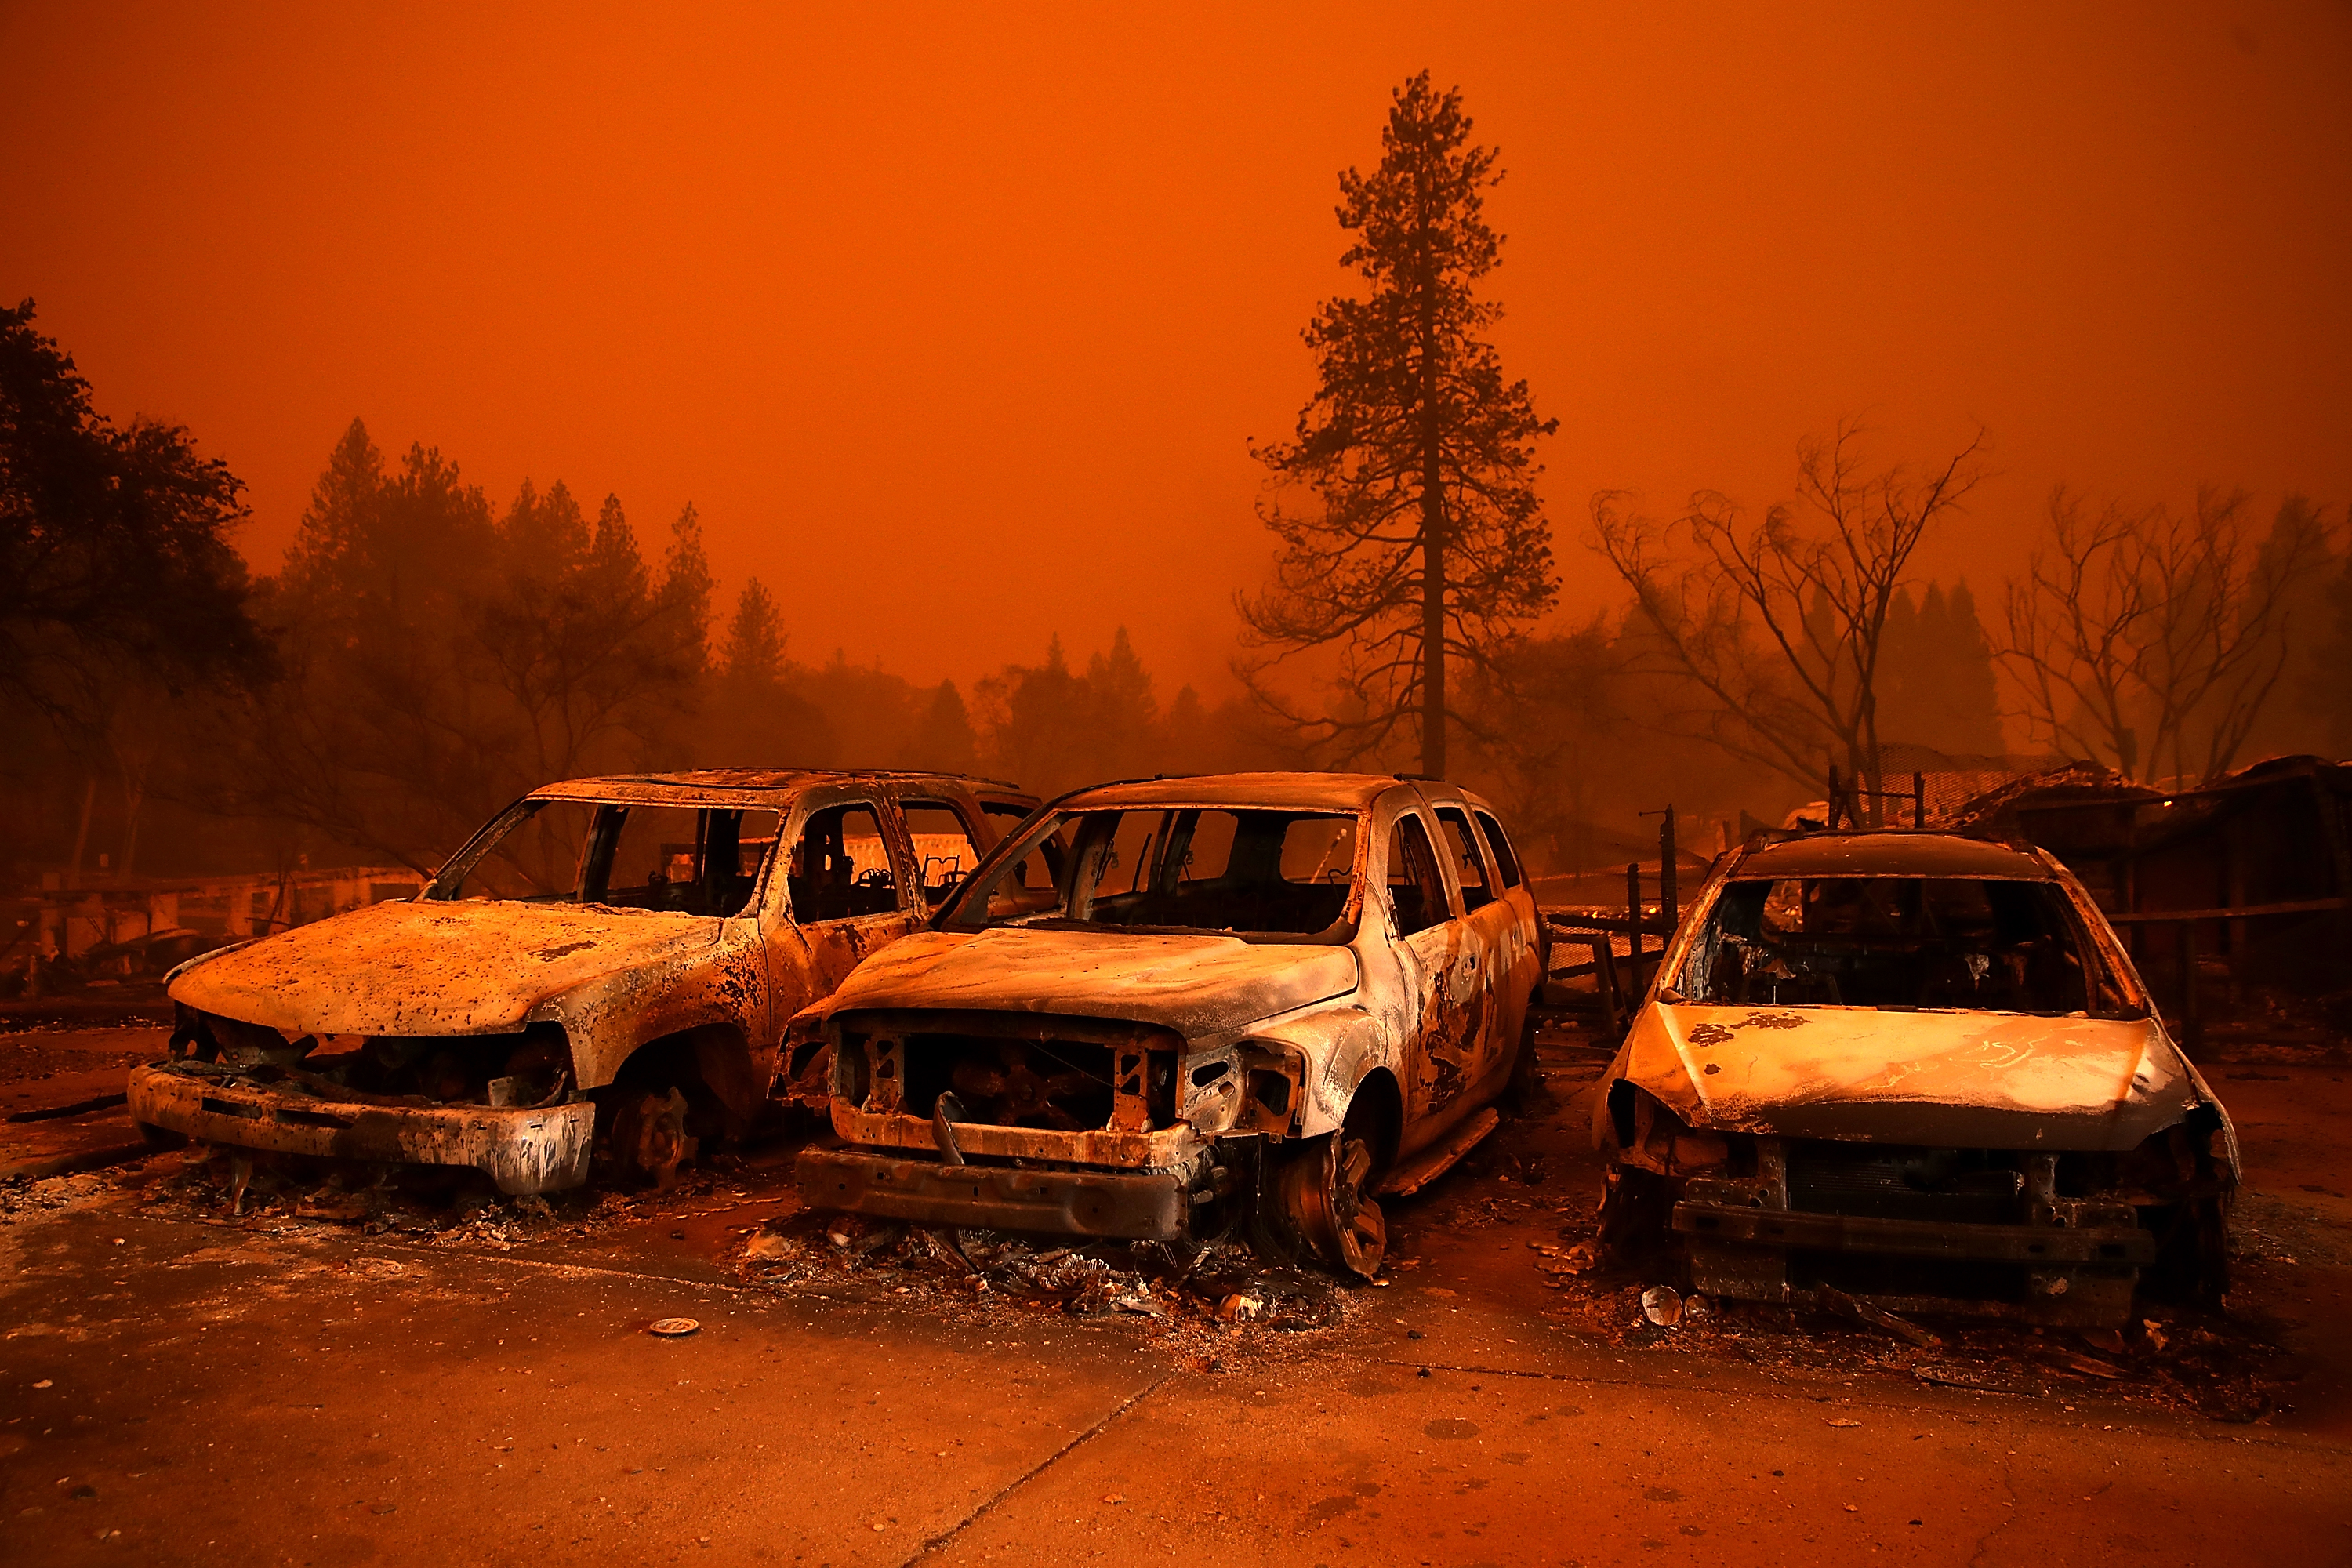 Cars destroyed by the Camp Fire sit in the lot at a used car dealership on November 9, 2018, in Paradise, California. Fueled by high winds and low humidity, the rapidly spreading Camp Fire ripped through the town of Paradise and has quickly charred 70,000 acres and has destroyed numerous homes and businesses in a matter of hours. (Getty Images)